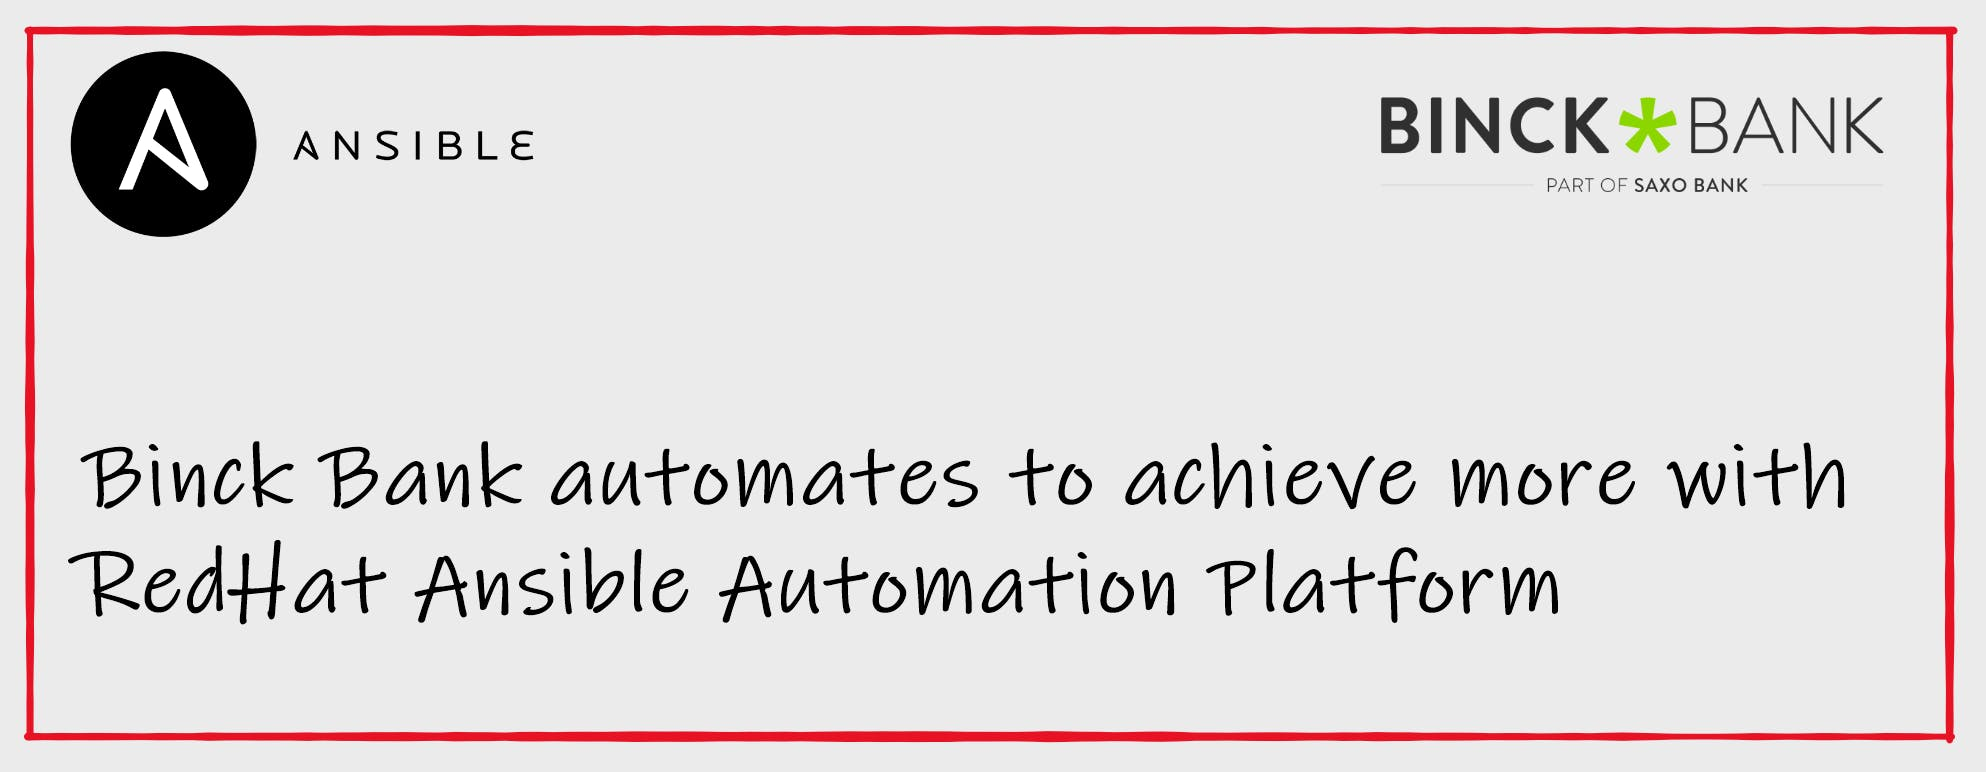 Automate.png